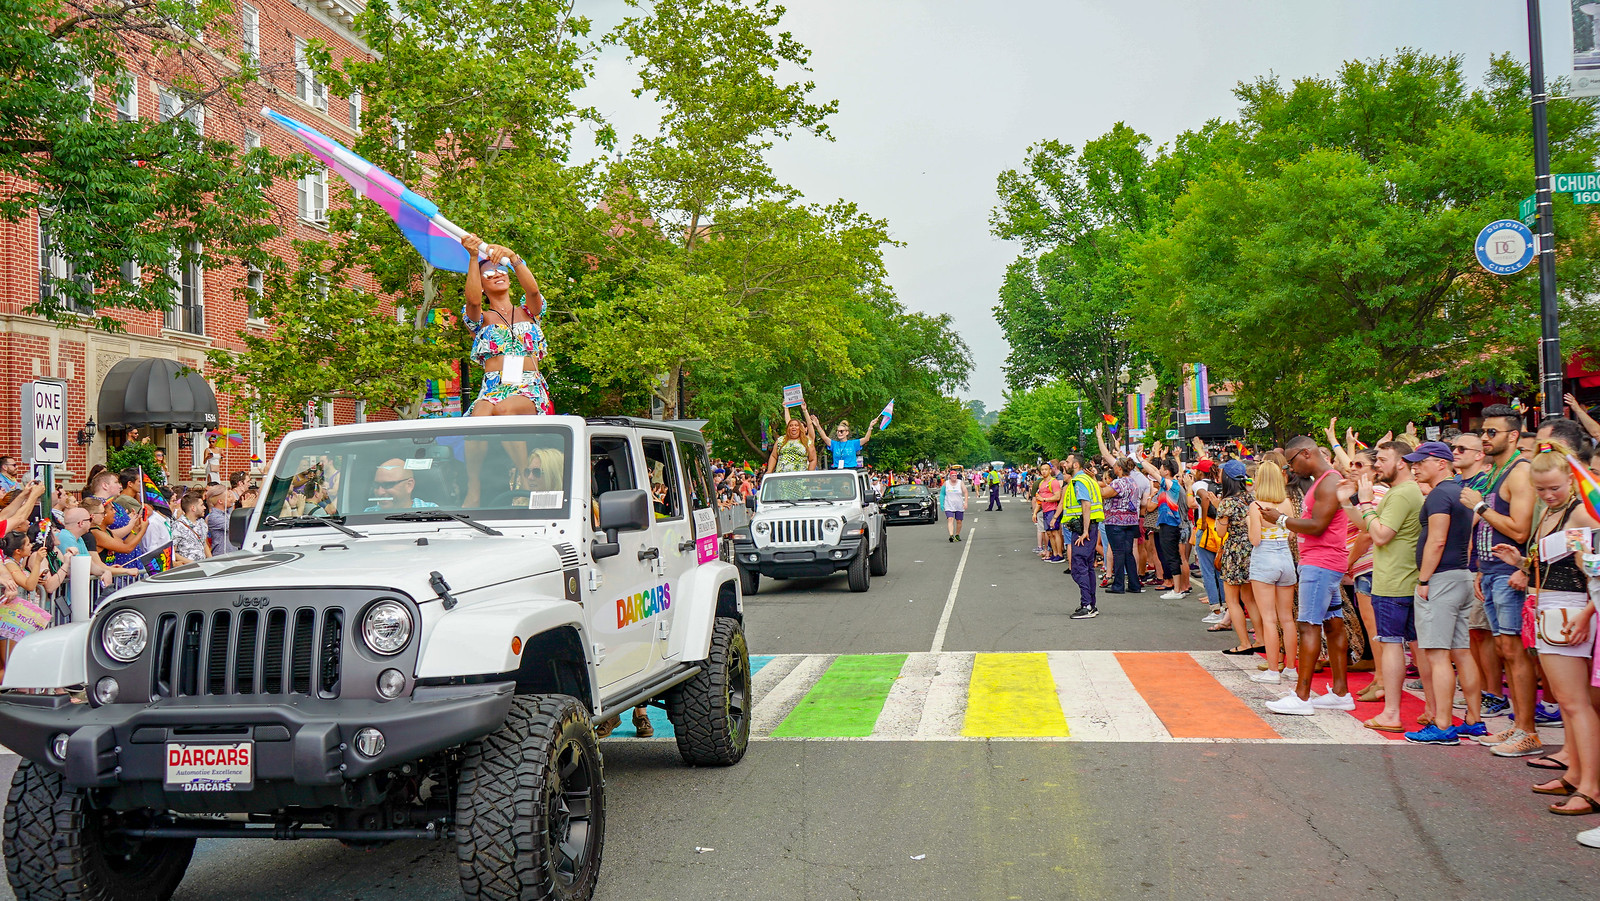 2018.06.09 Capital Pride Parade, Washington, DC USA 03160